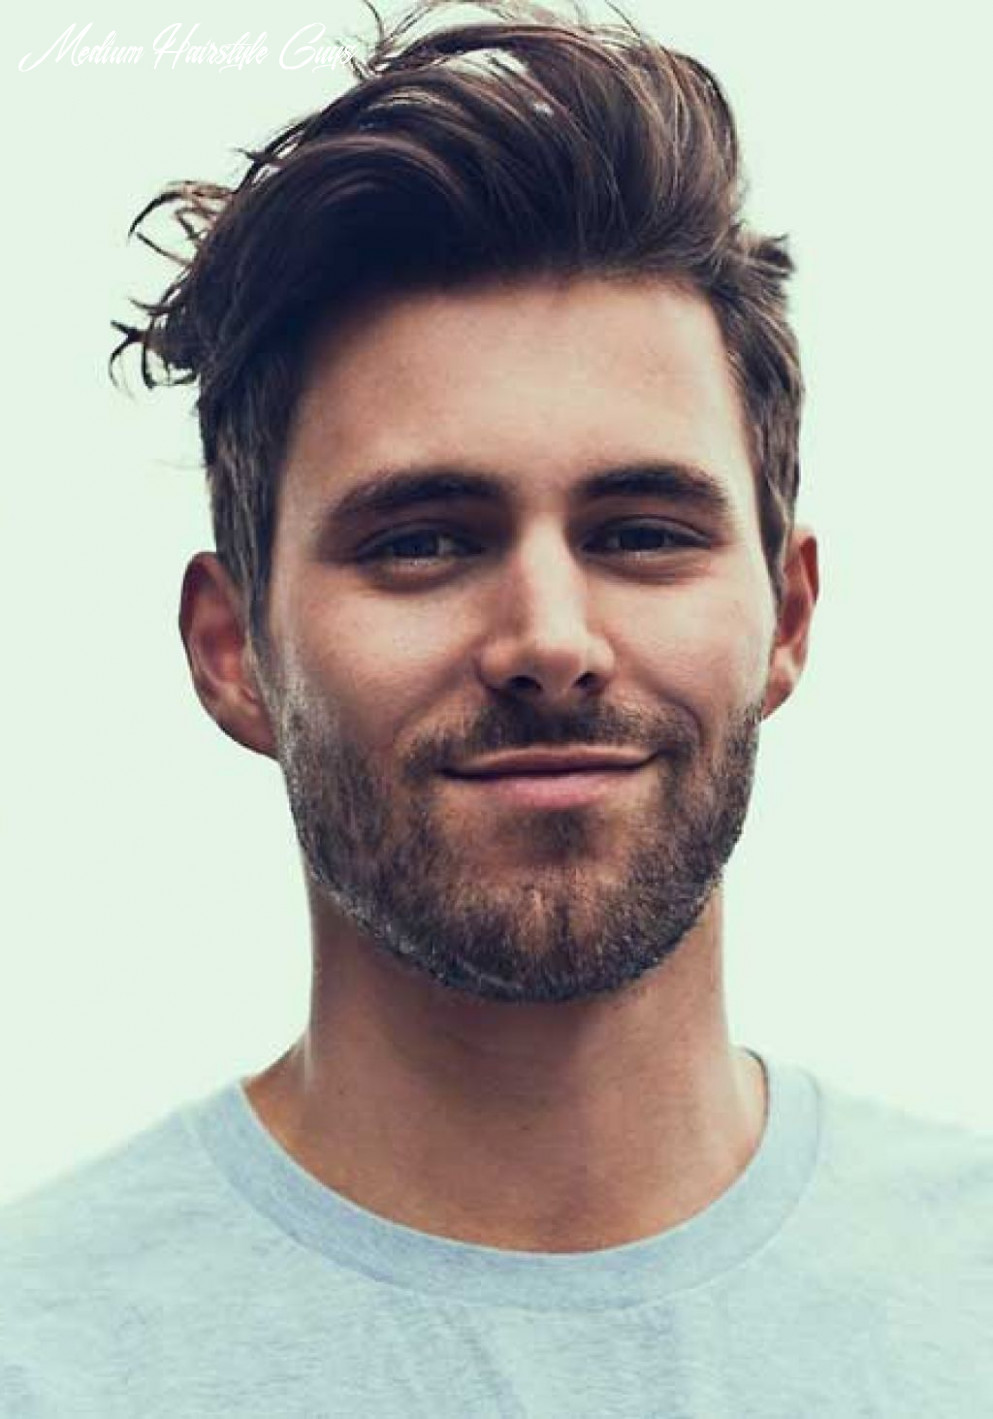 Undercut hairstyles men | hipster haircuts for men, mens